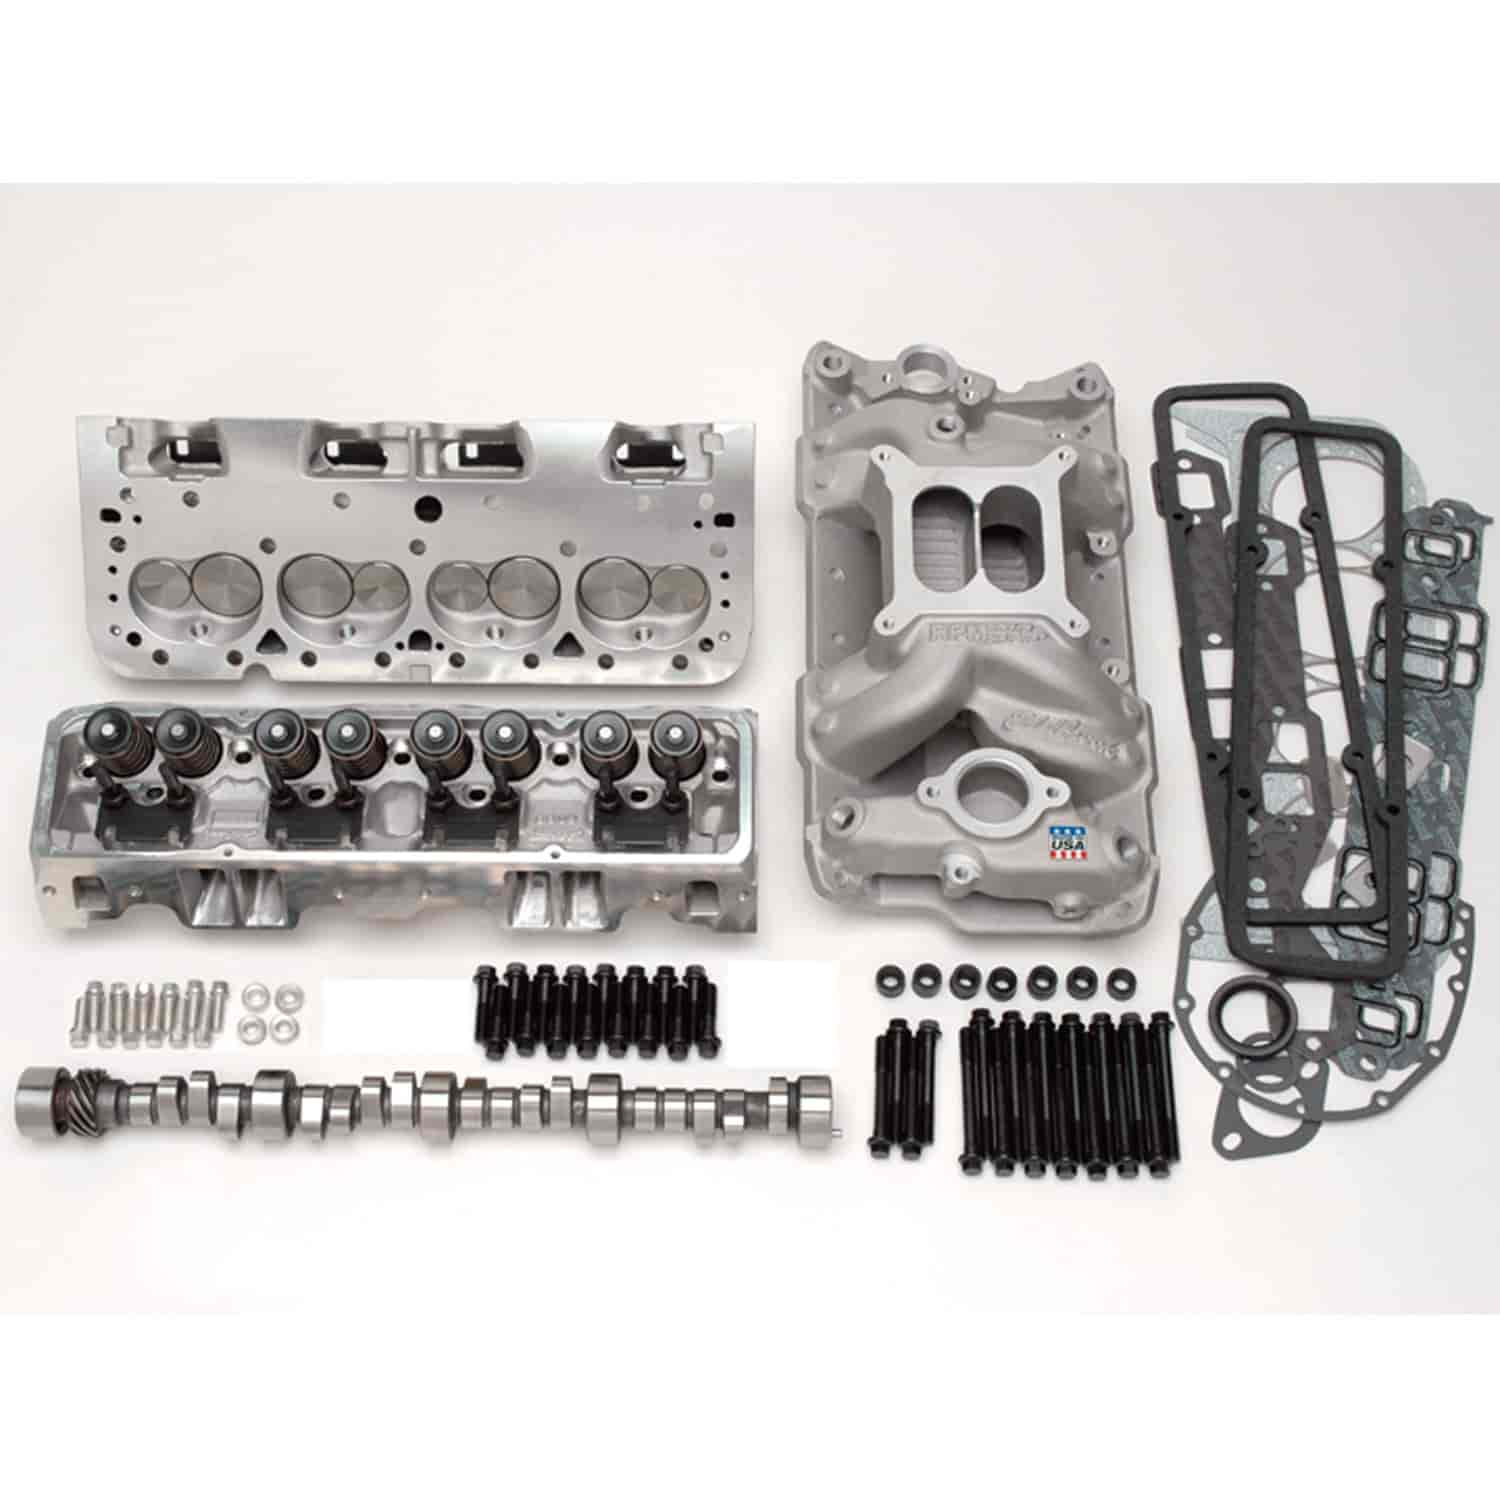 Edelbrock 2088 - Edelbrock Power Package Top End Kits